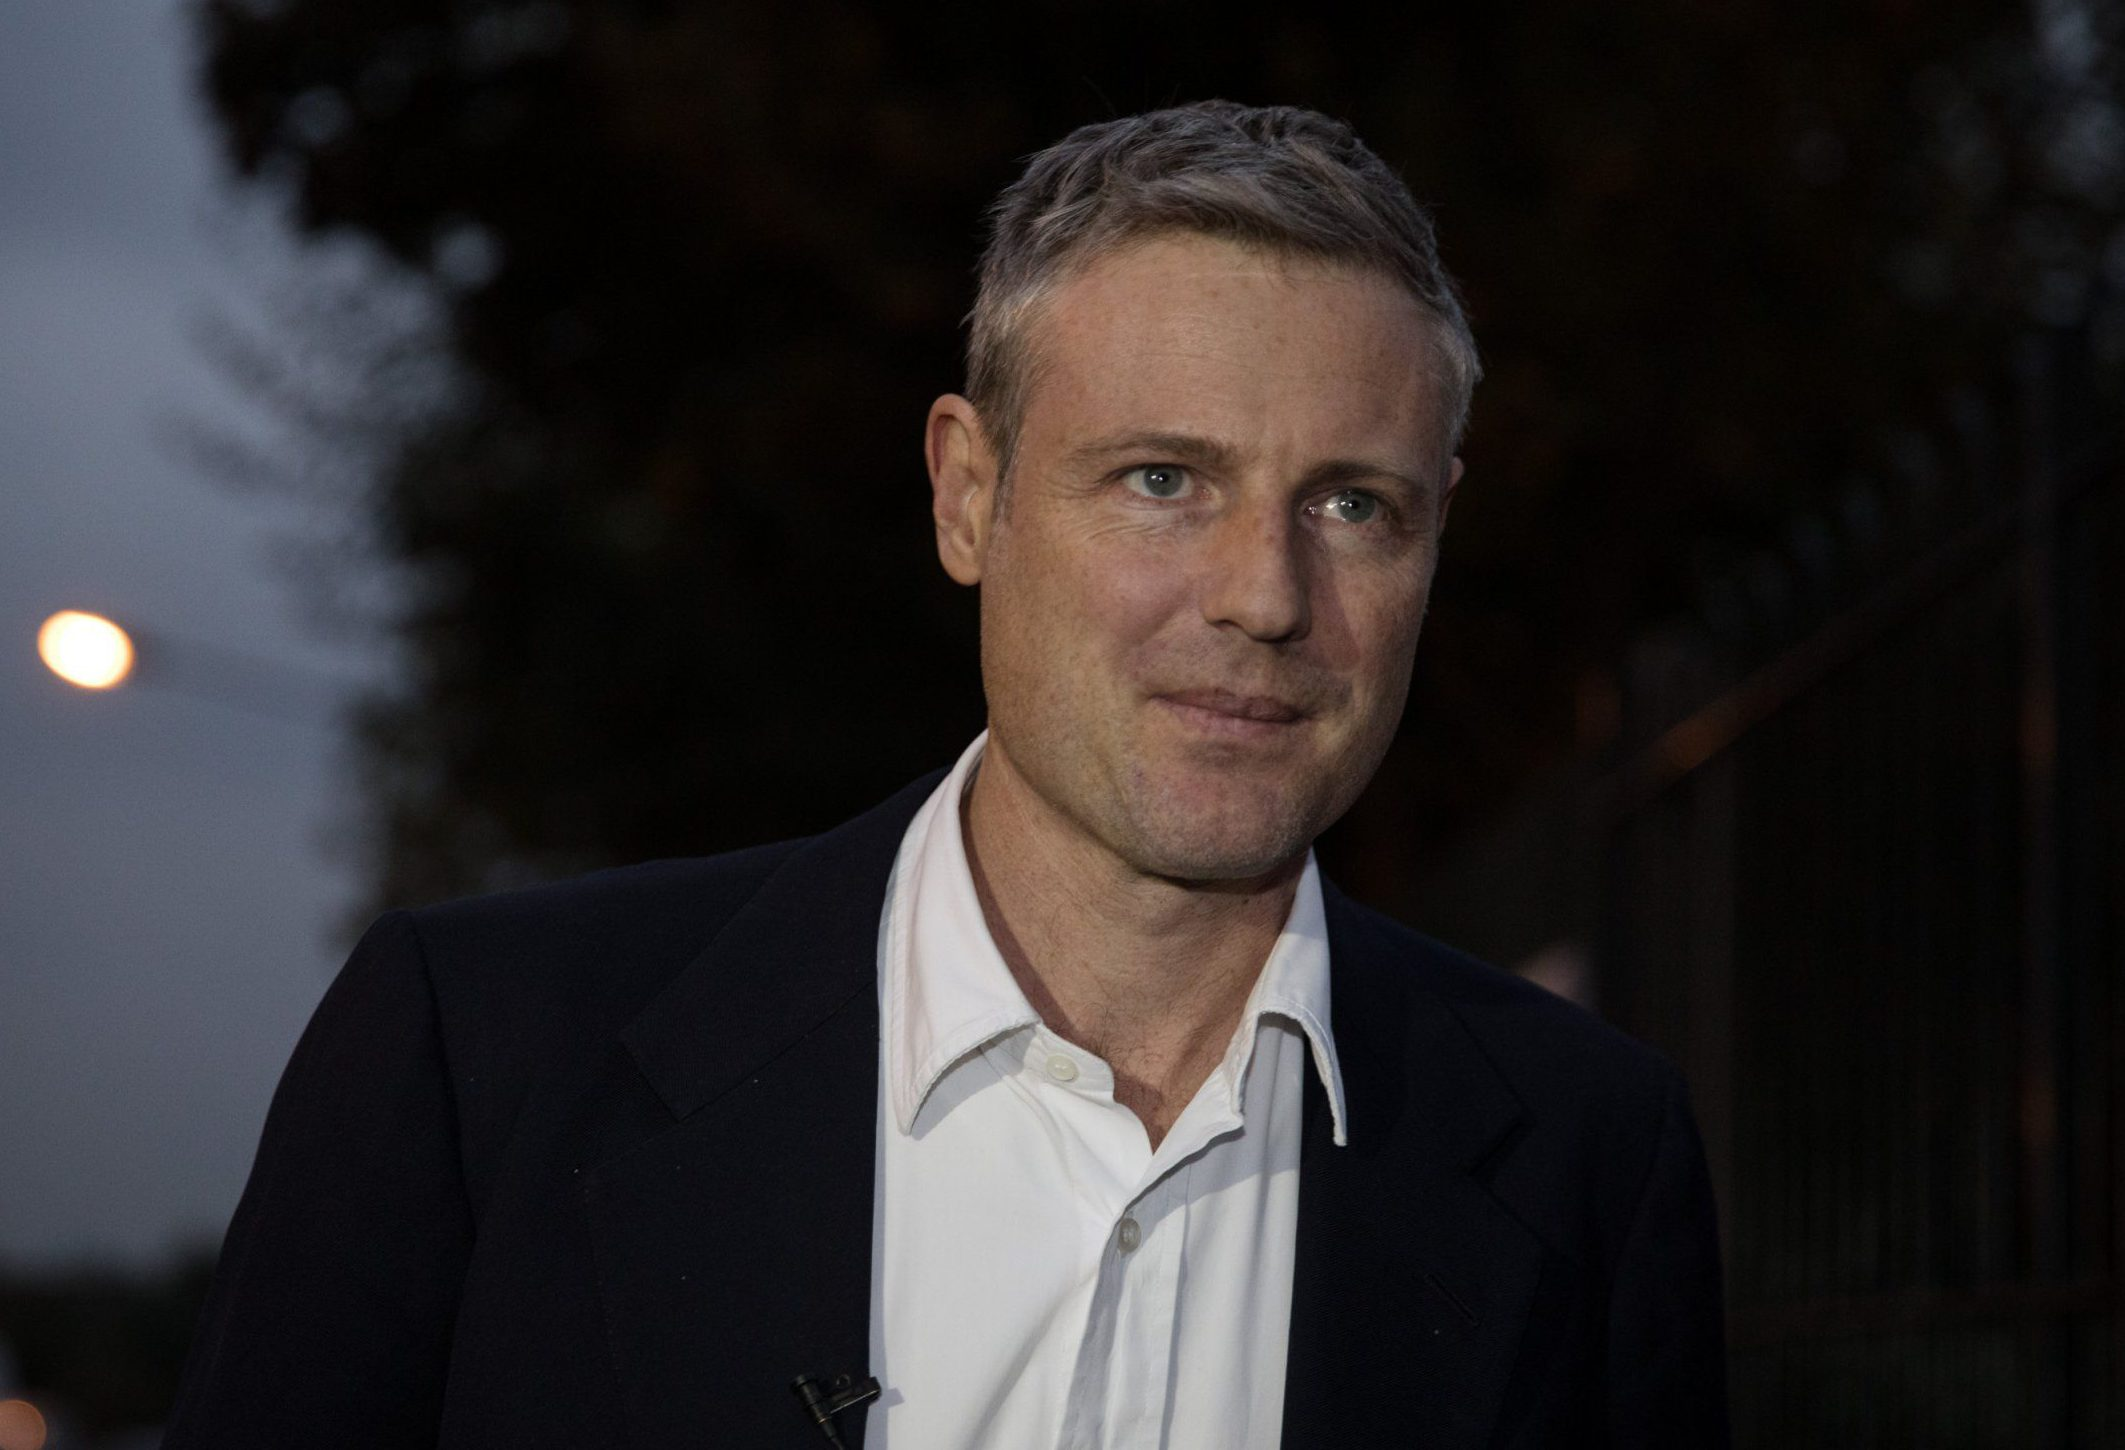 Tories will not contest Zac Goldsmith's seat after he resigned over Heathrow expansion